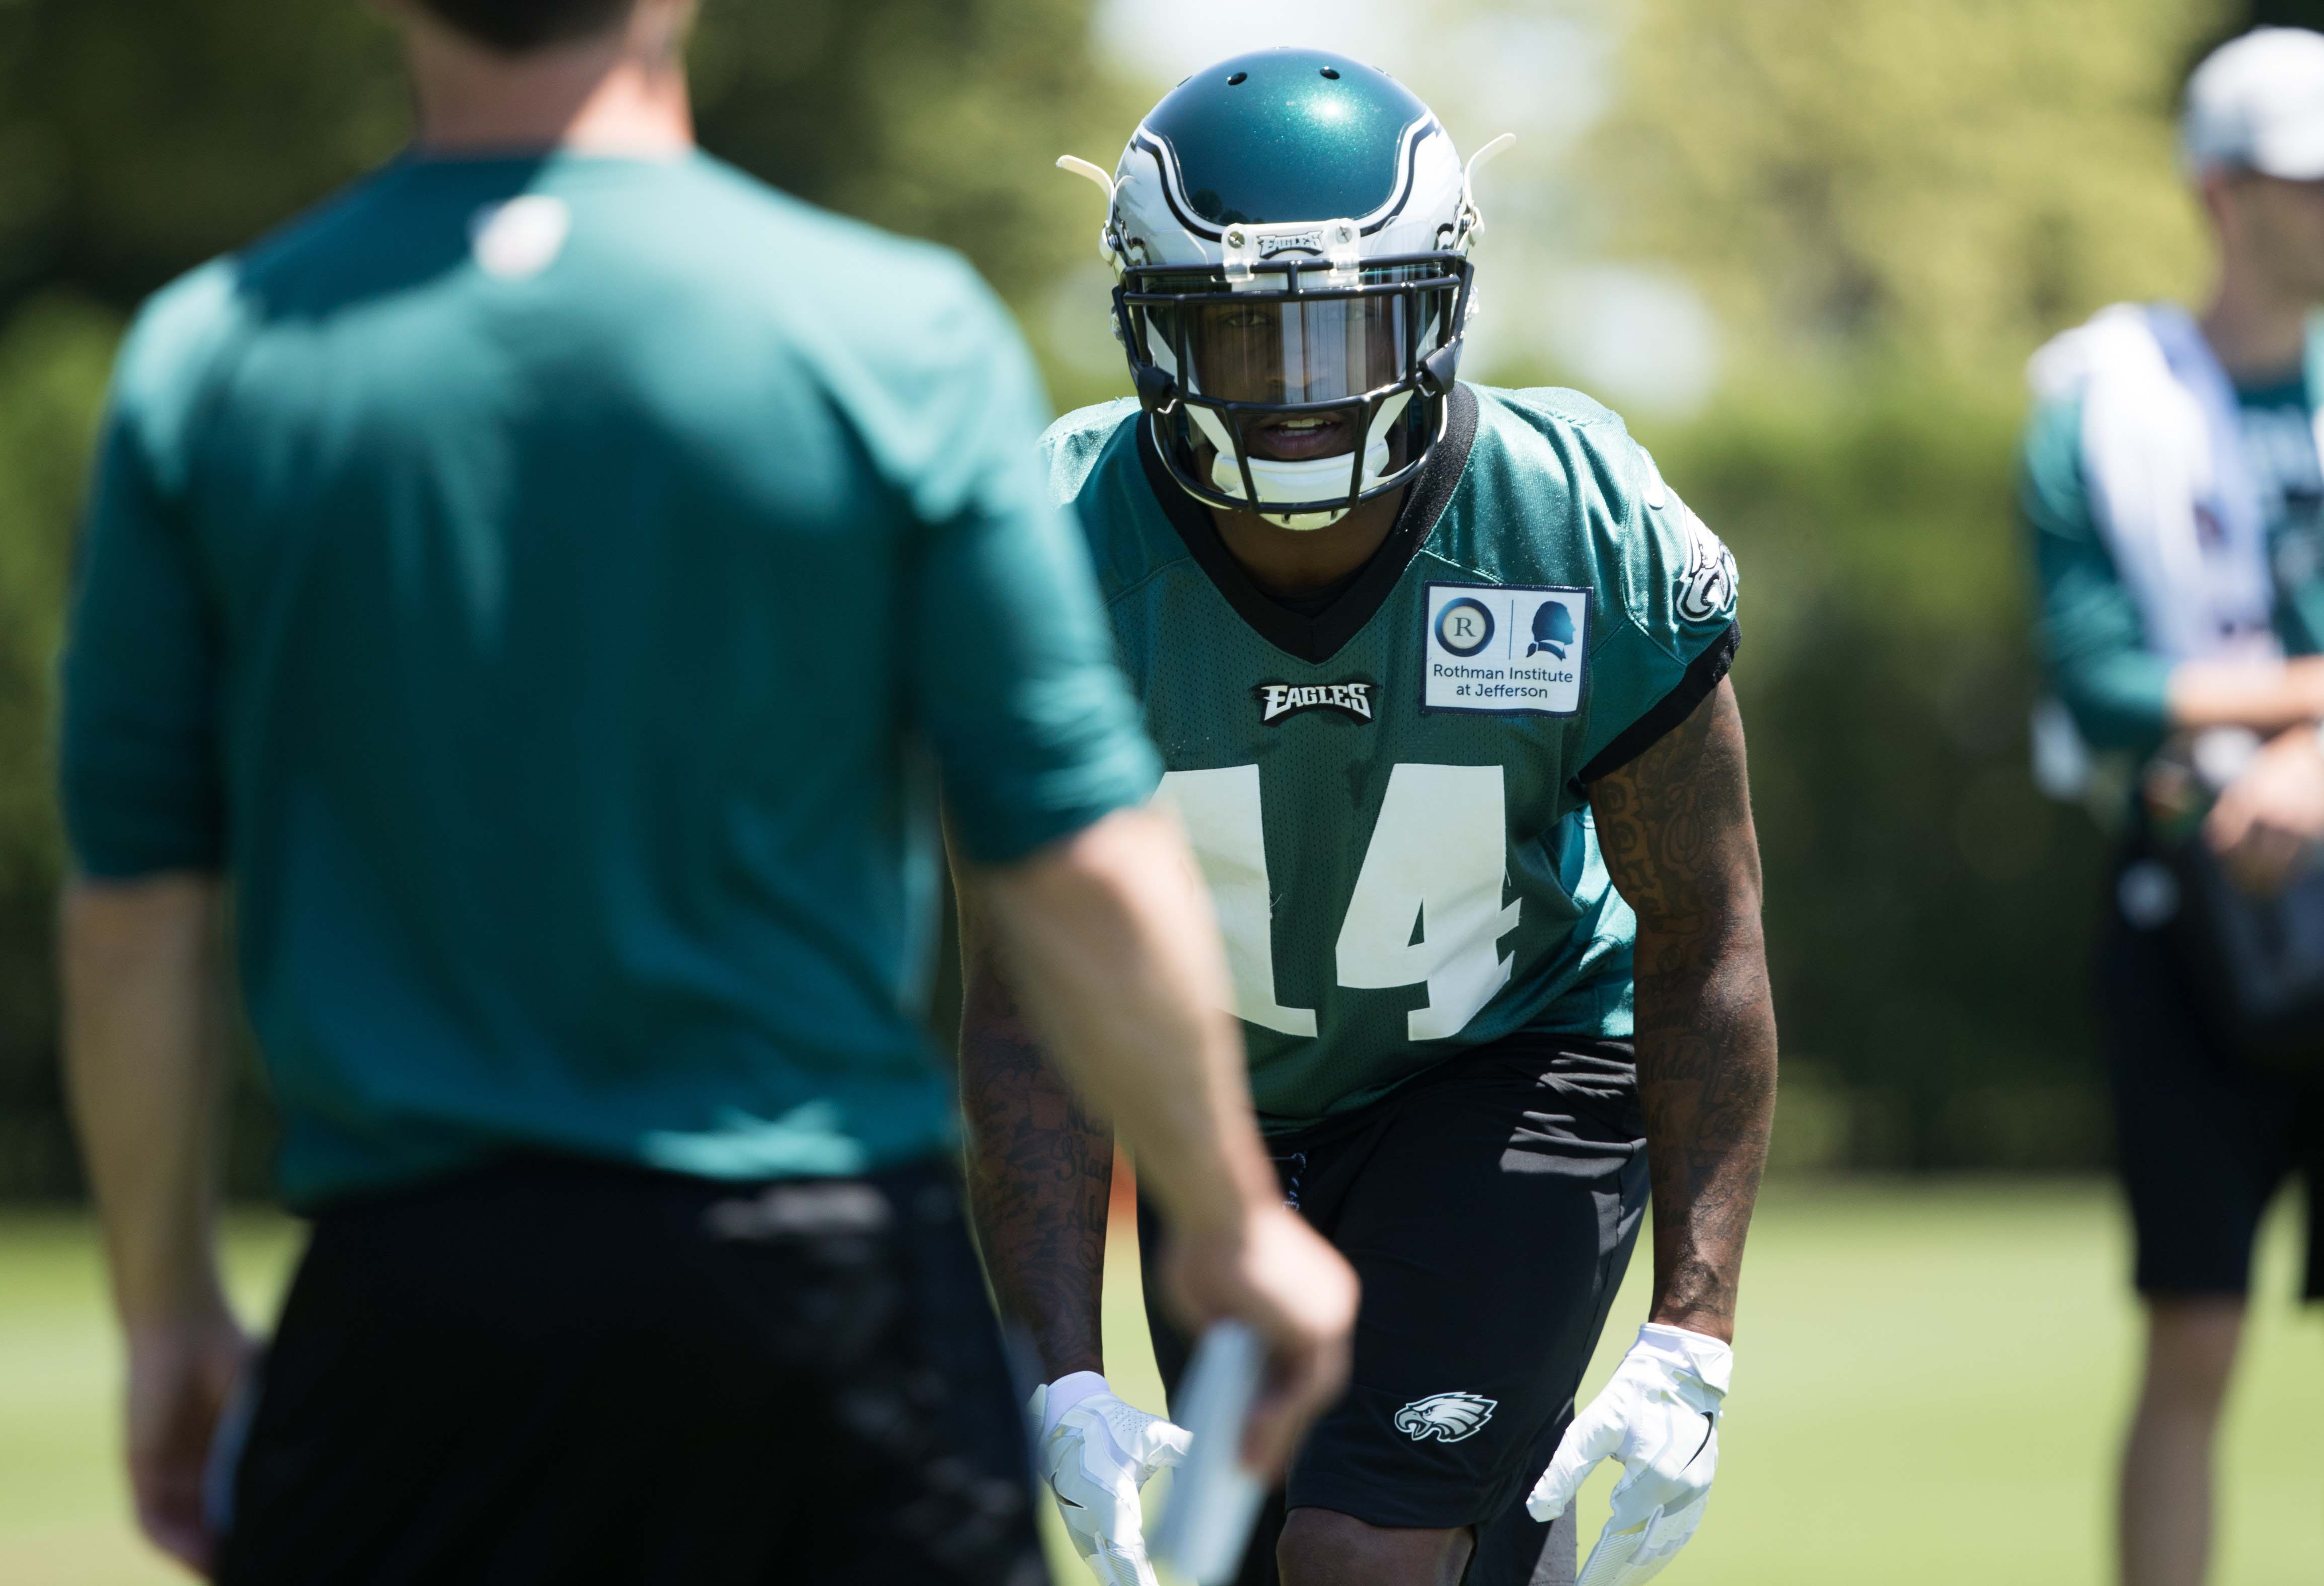 a8f385031f3 Eagles: Will Mike Wallace, Mack Hollins or Richard Rodgers play this  season? | 94 WIP